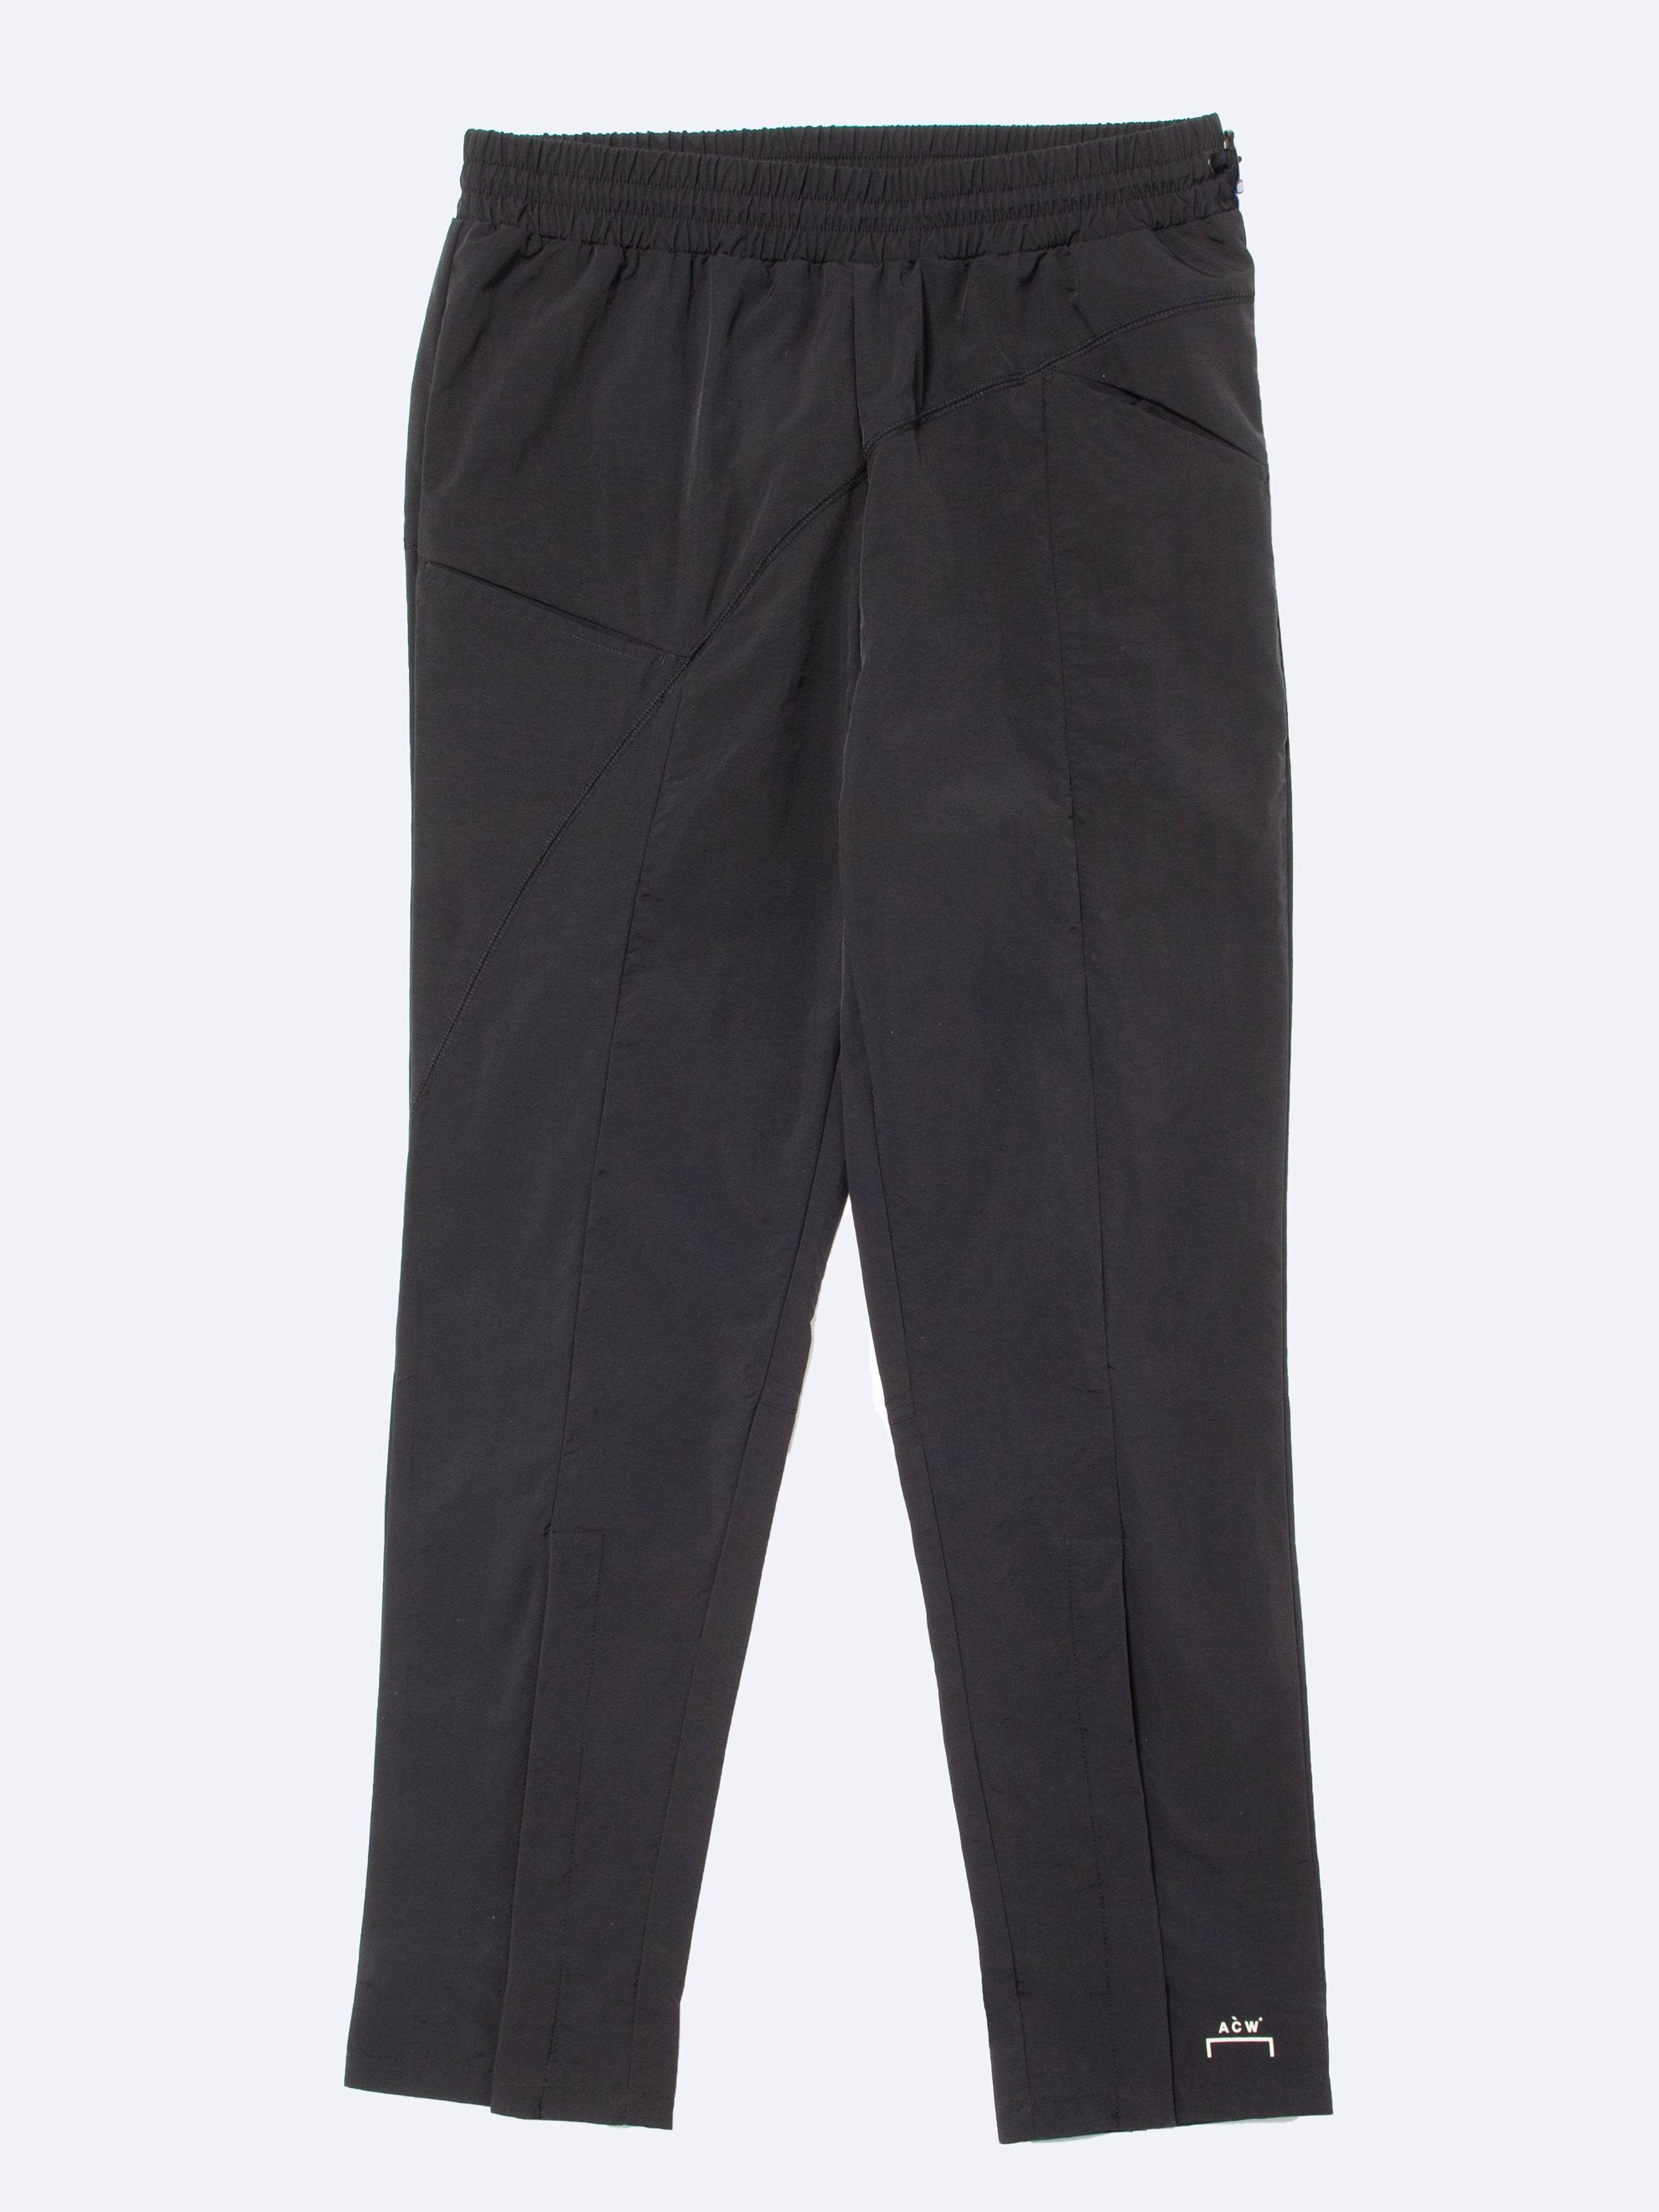 Black Woven Pant Curved Stitch Track Pants 1